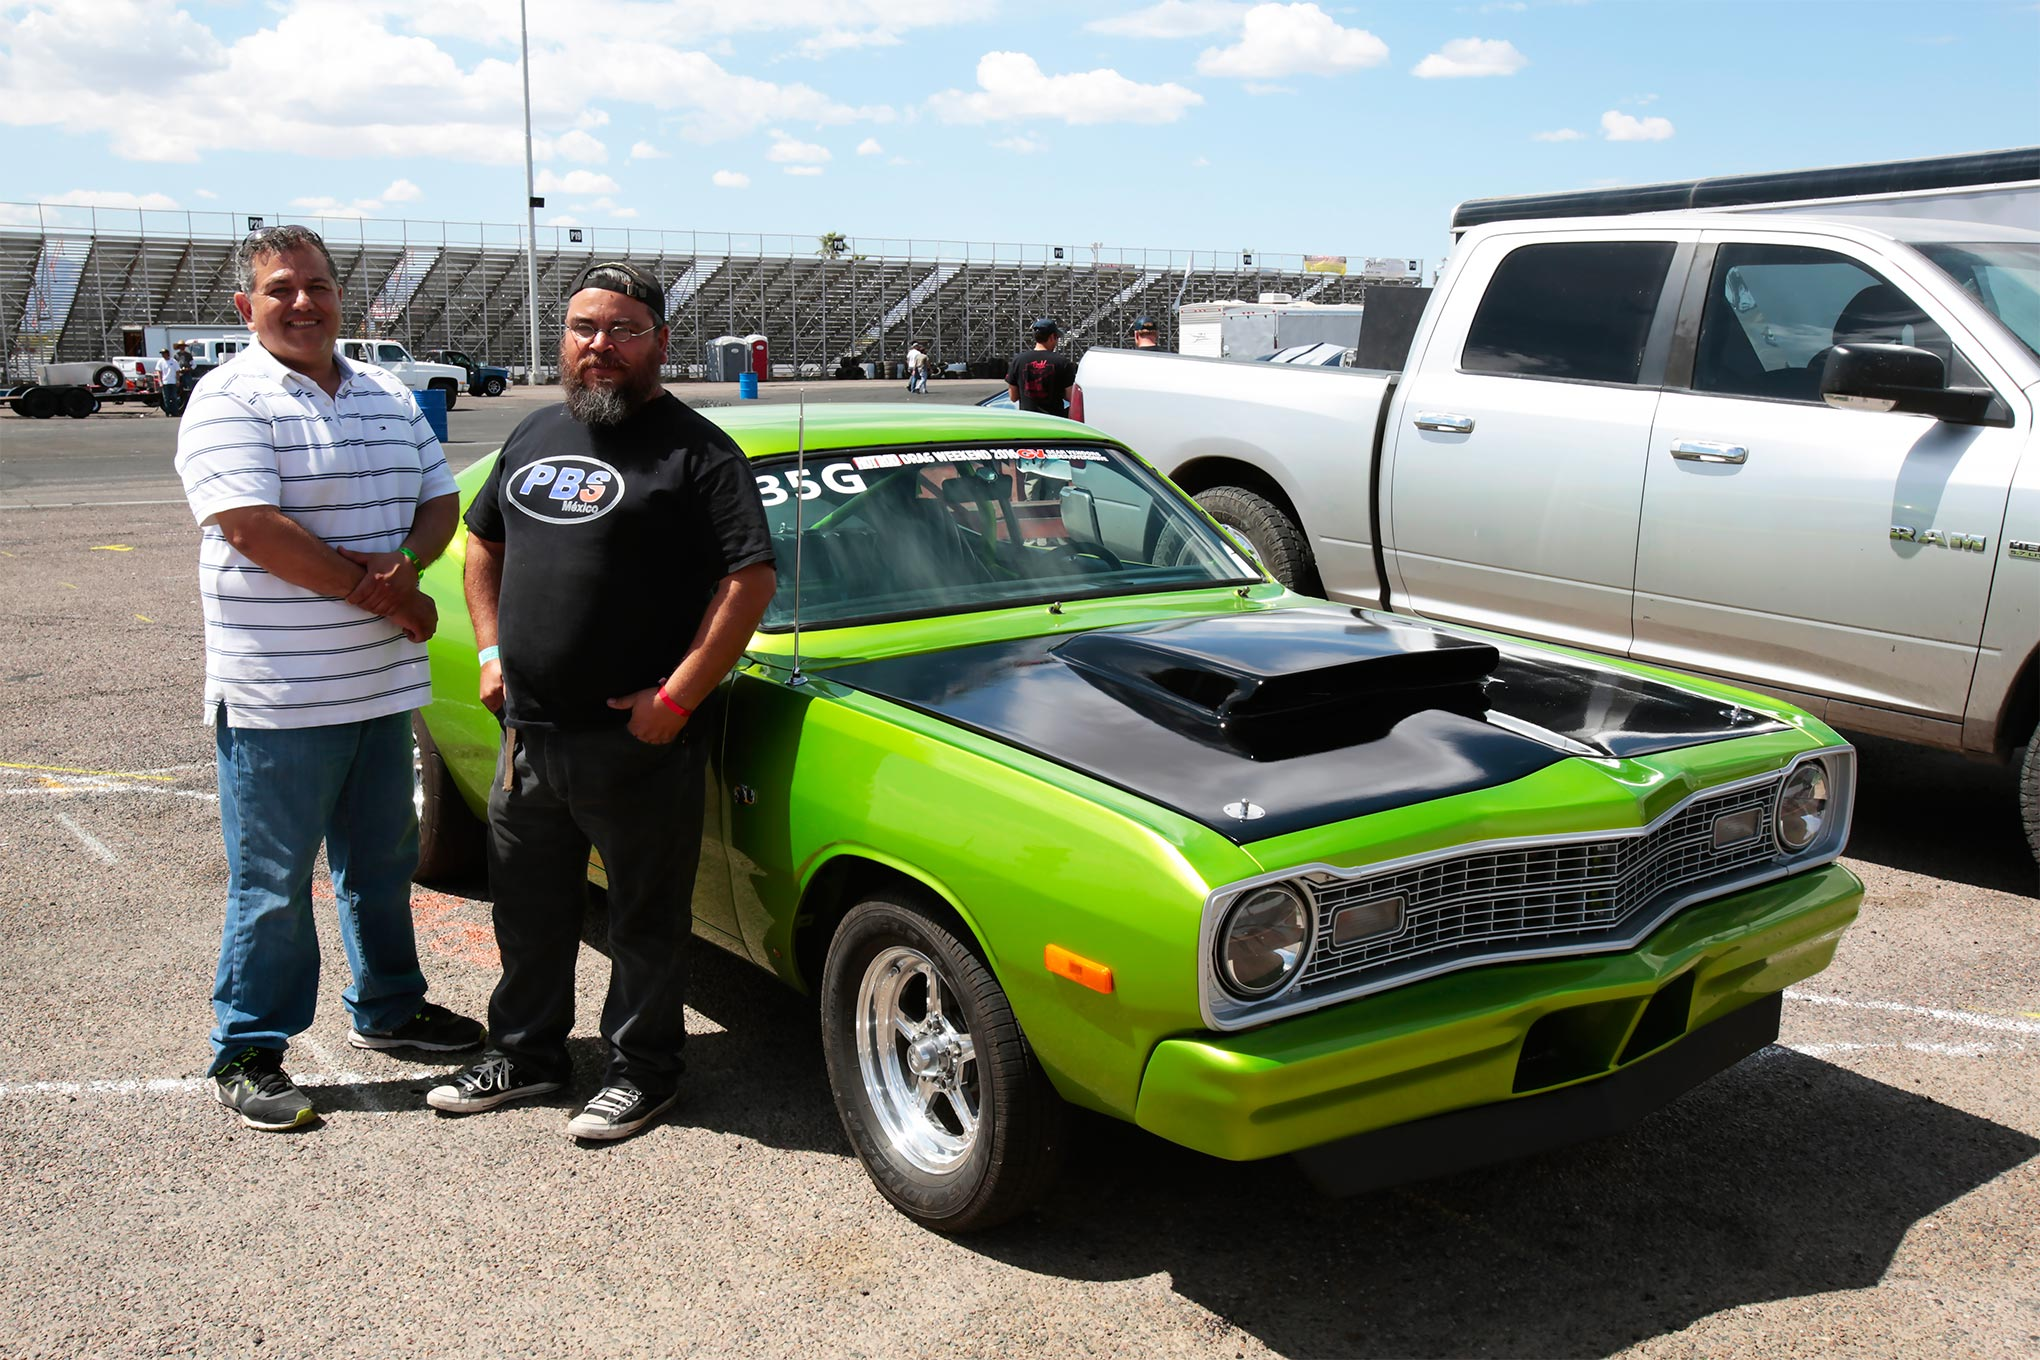 Abraham Vega, left, and Luis Corbala have been friends for years and tried to get the Bee ready for our first Drag Weekend. After a lot of last-minute wrenching and paint, the two managed to get the car in shape for our second running of the event.